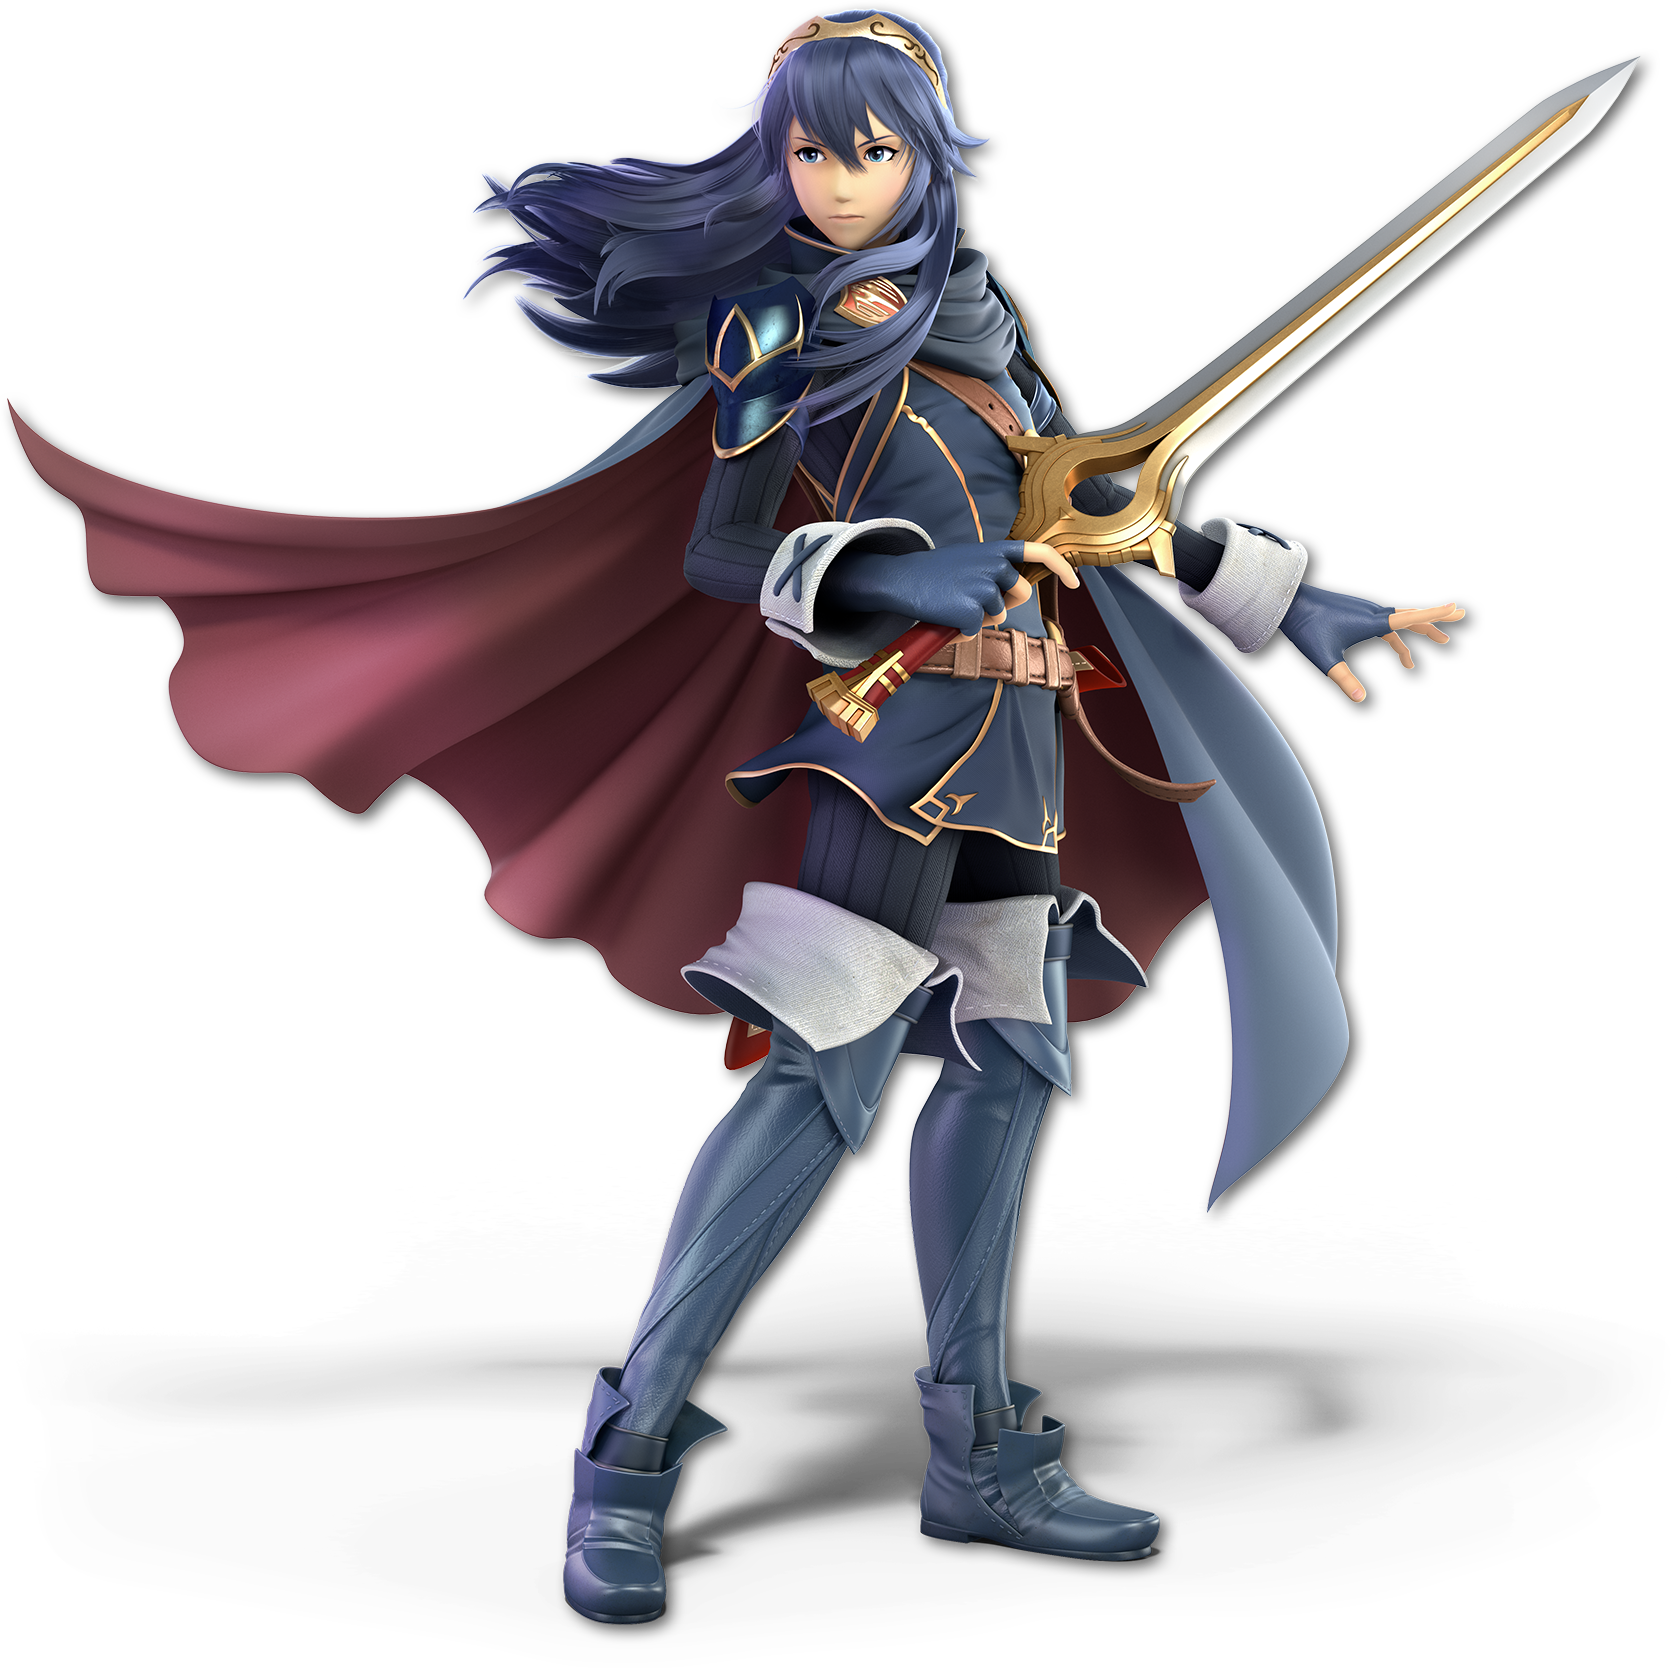 fe heroes how to get sp